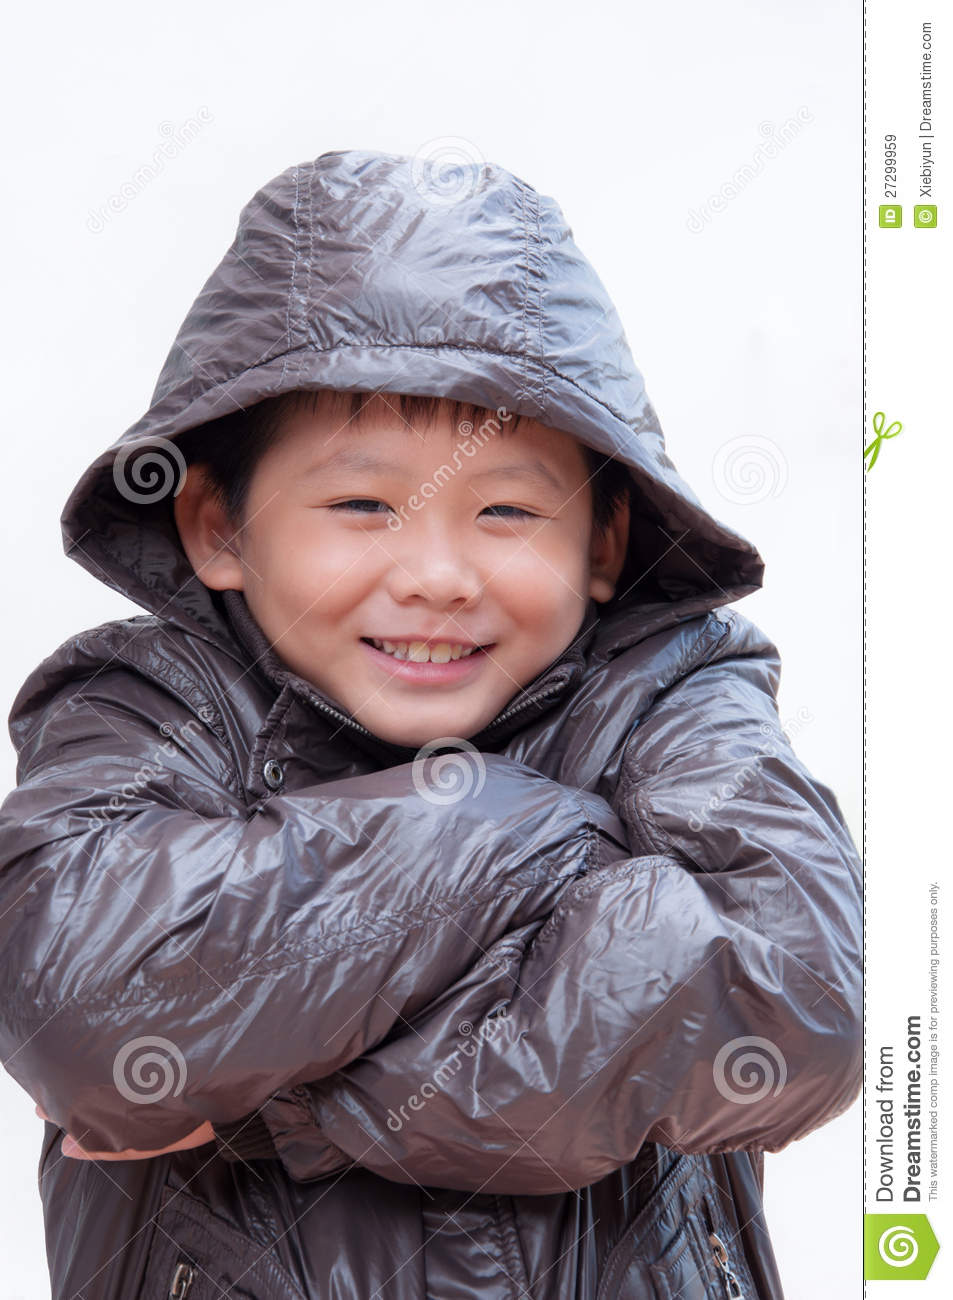 Coops furthermore Co Op City Floor Plans likewise 696 also Little Asian Boy Smiling besides Co Op City Apartments Floor Plans. on co op city apartment application